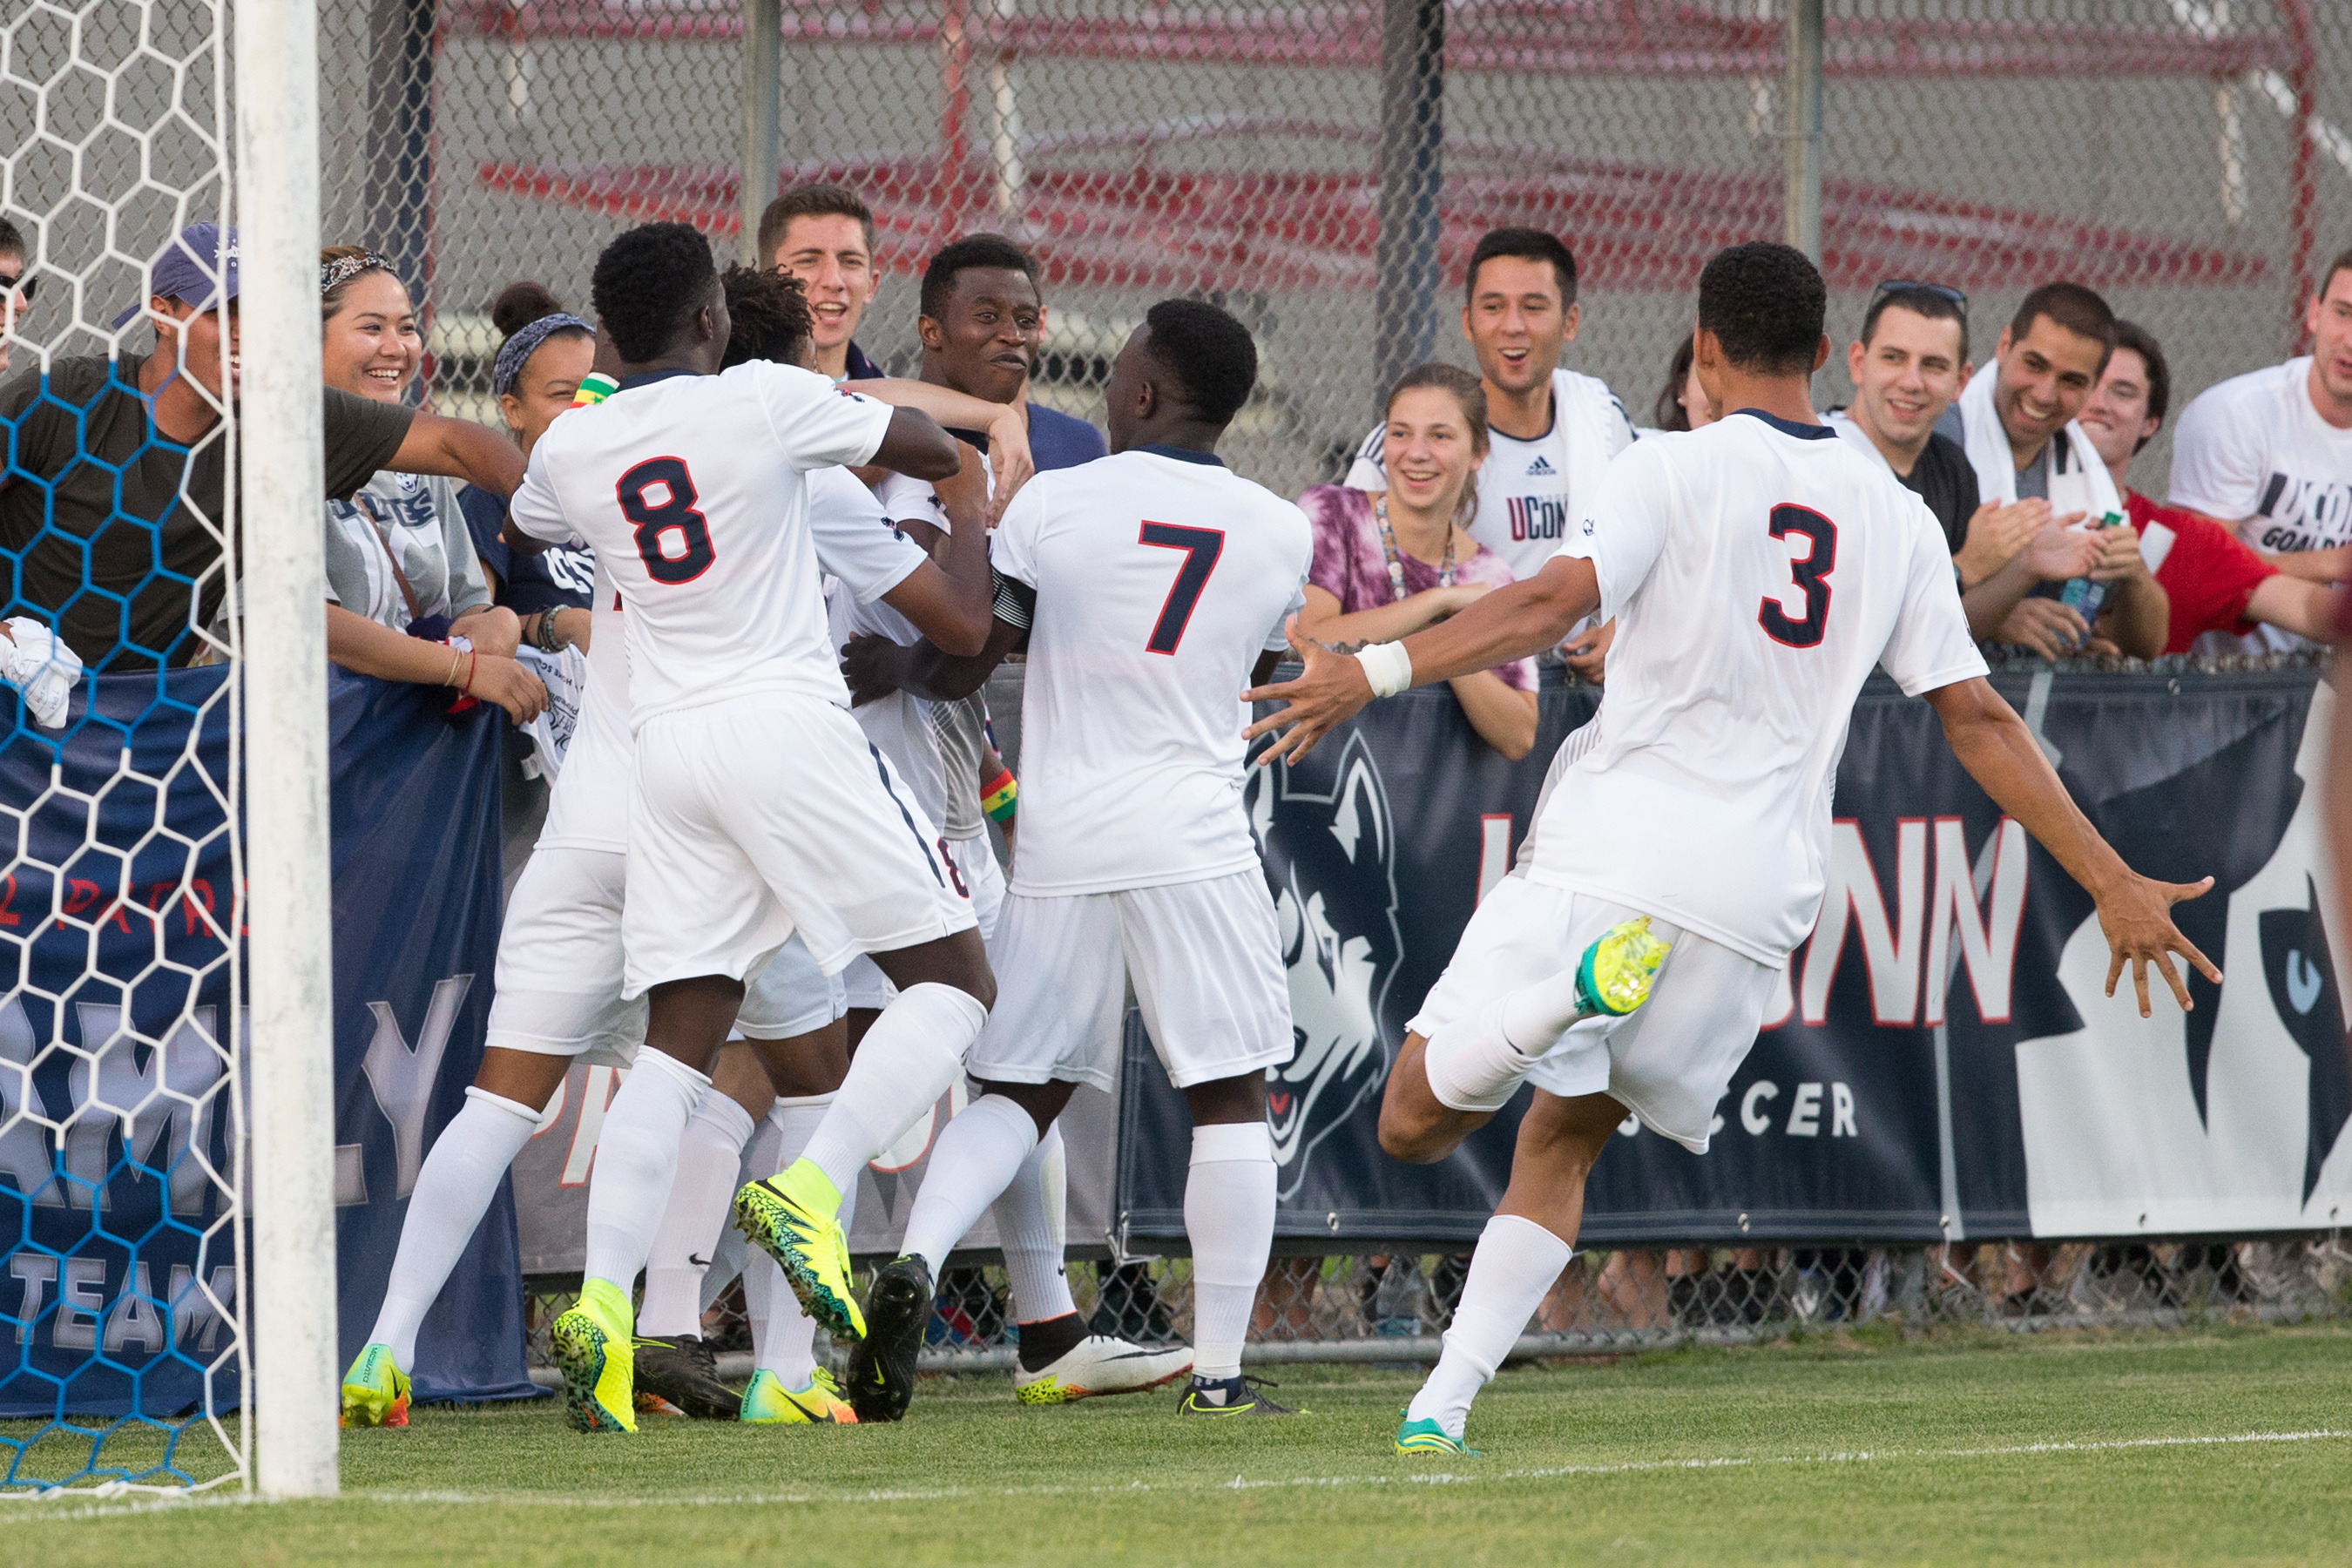 The Huskies celebrate their winning goal against Tulsa on Oct. 1. (Stephen Slade '89 (SFA) for UConn)